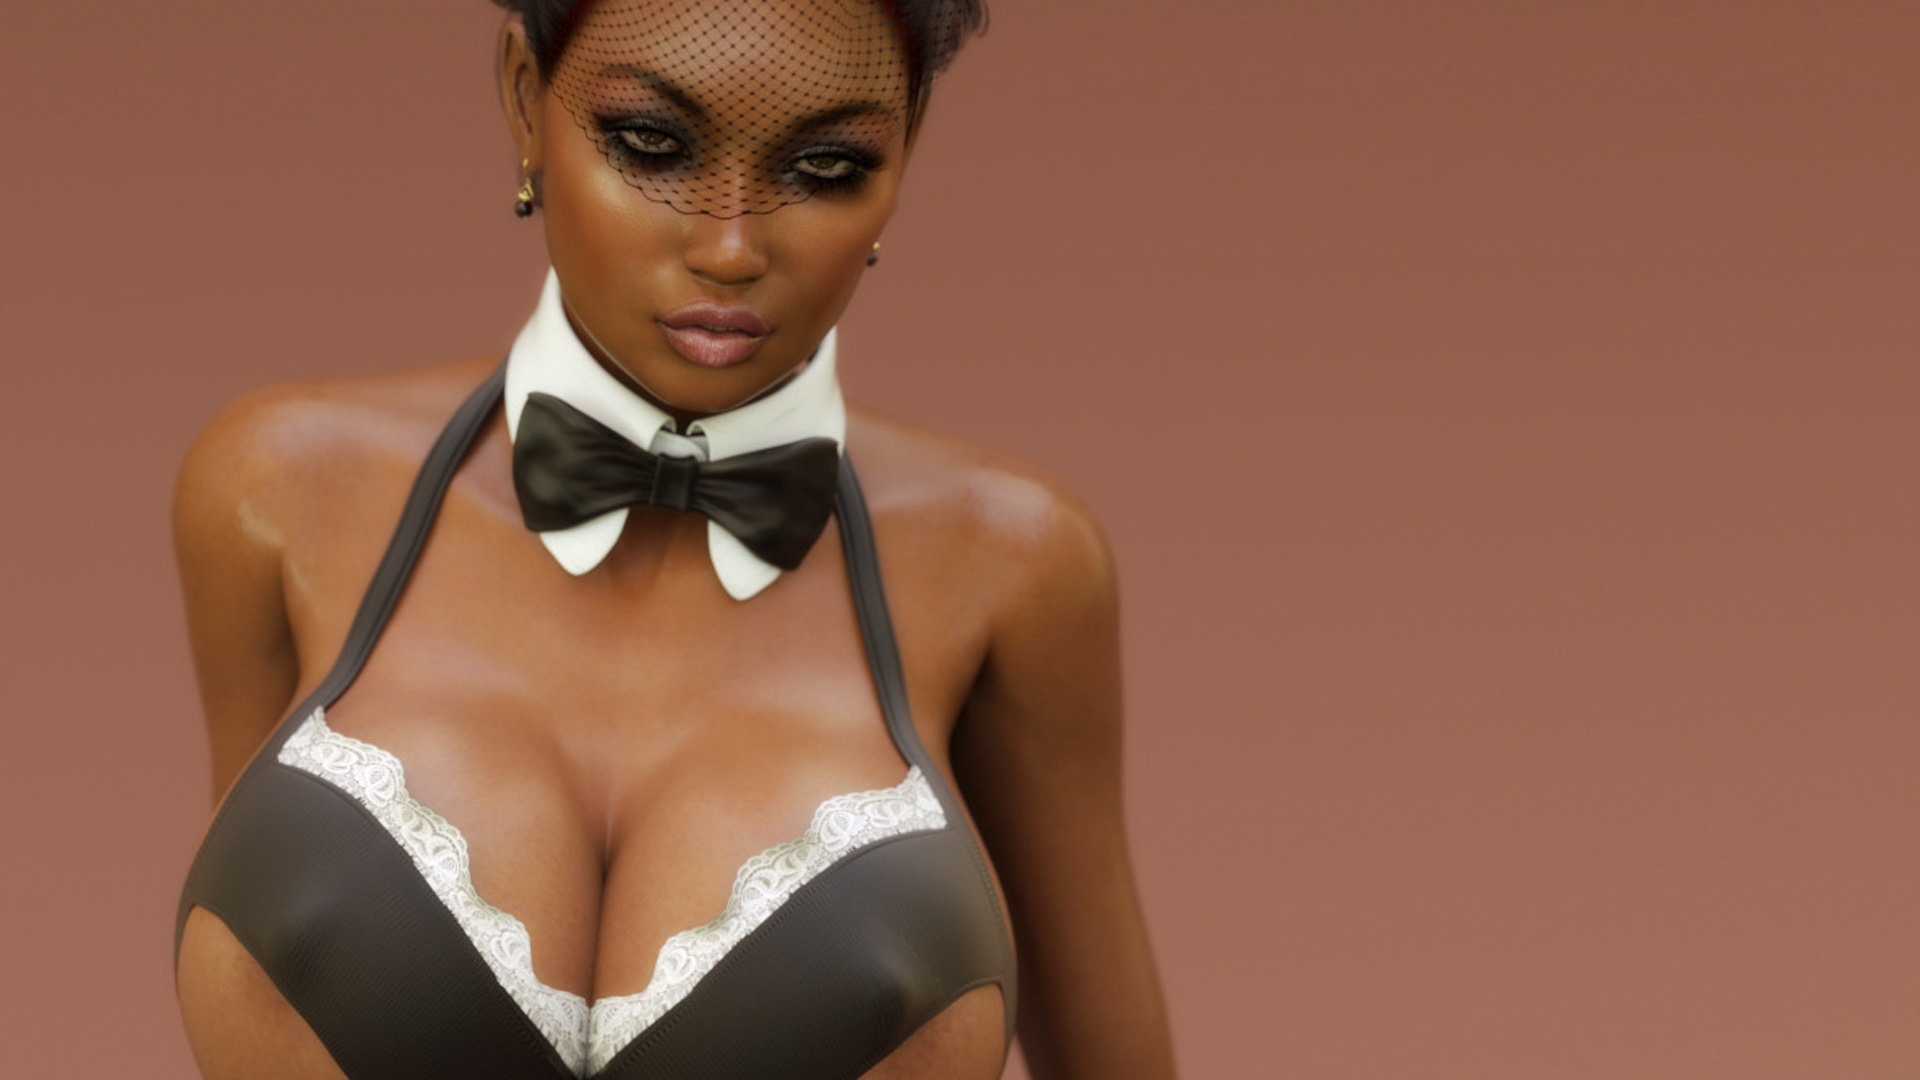 Interactive ebony whores in porn games